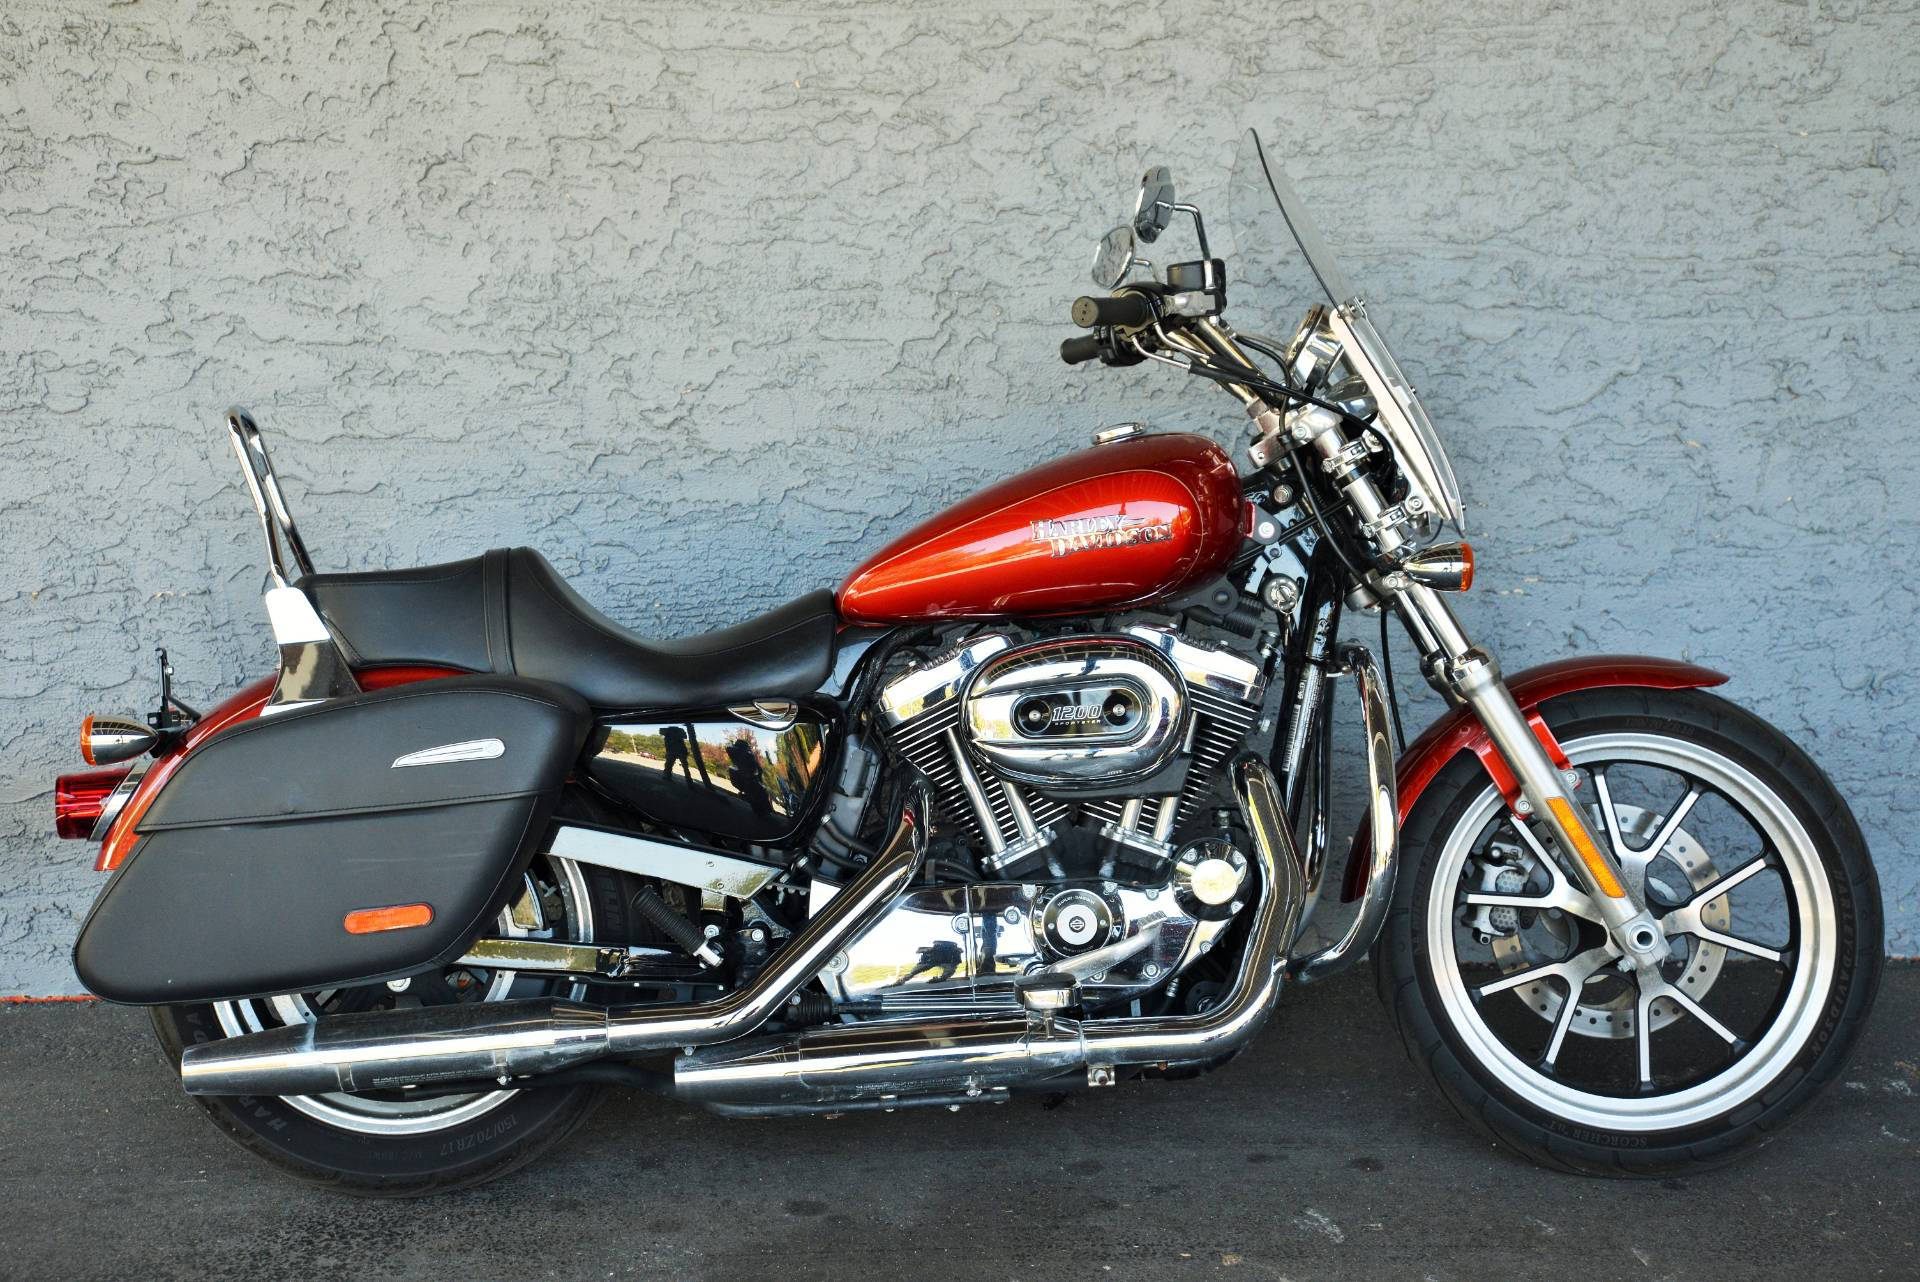 2014 Harley-Davidson 1200 SUPERLOW in Lakewood, New Jersey - Photo 1